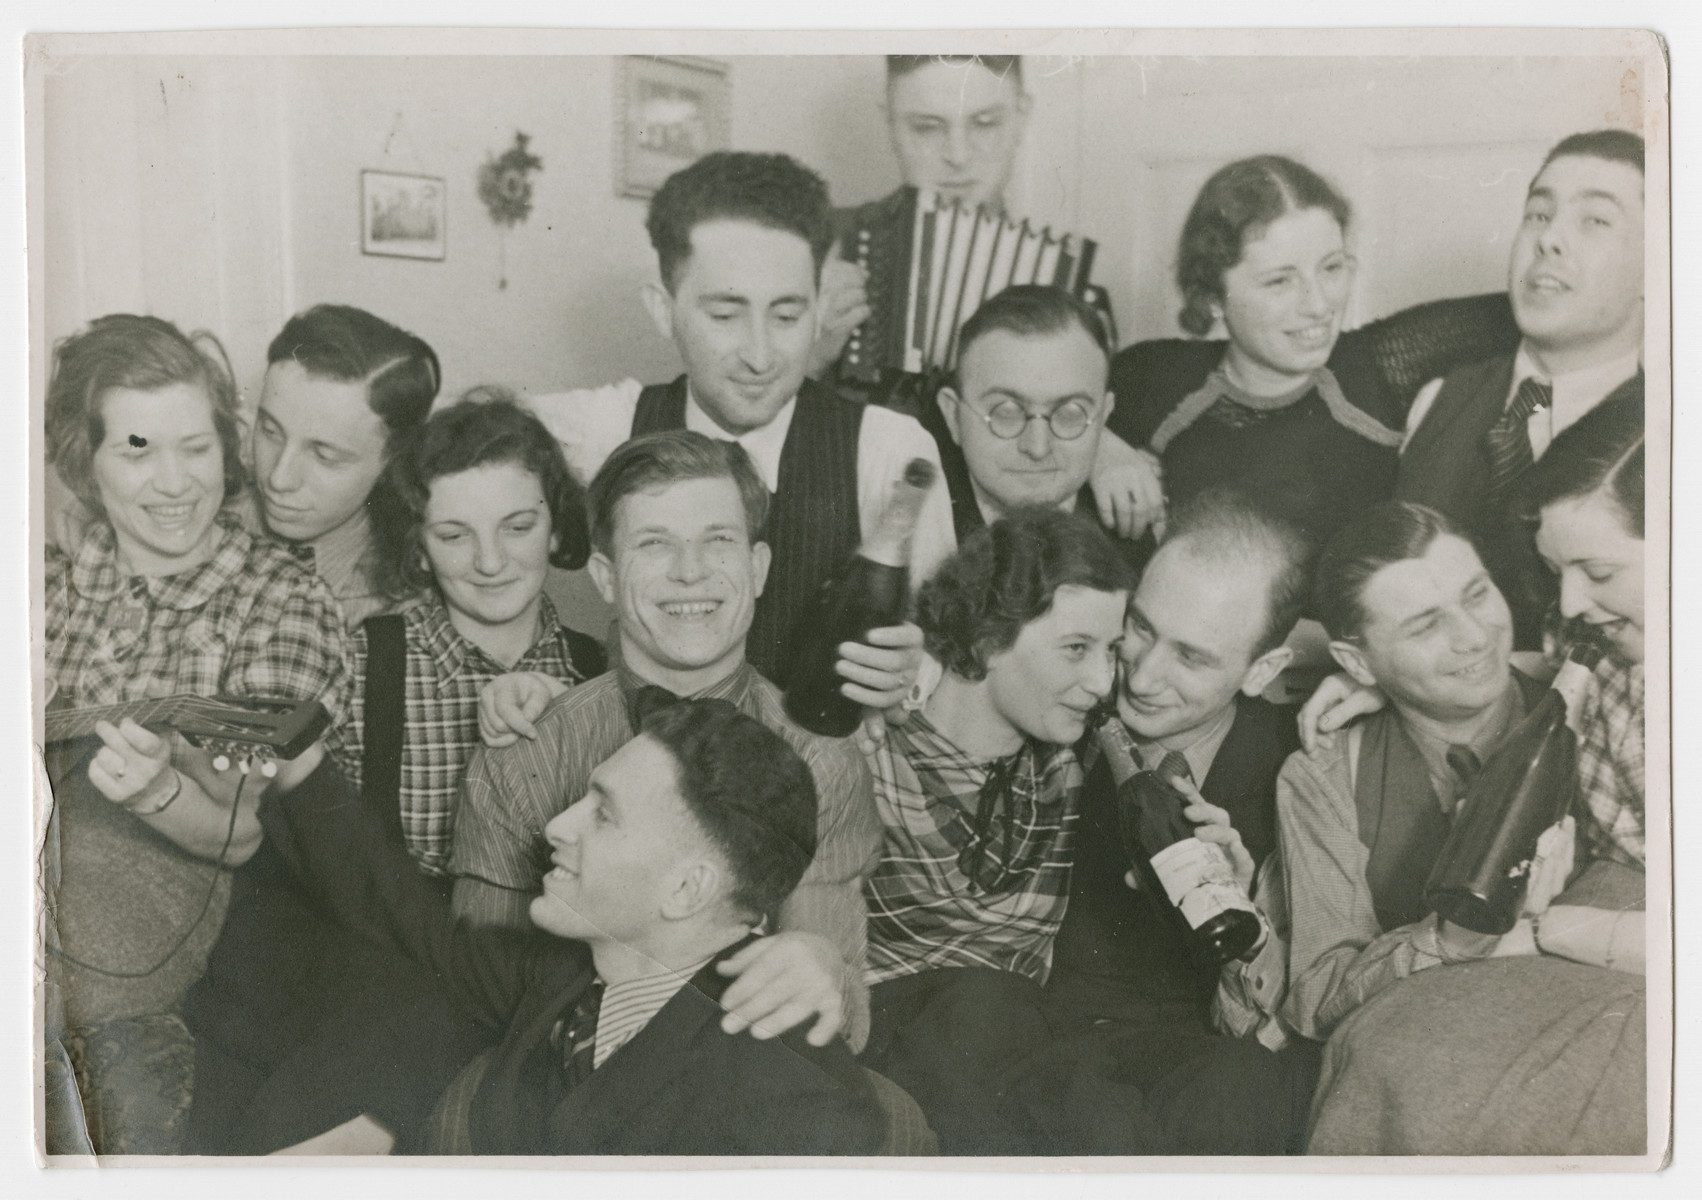 Jewish youth leaders celebrate with an accordion and bottles of champagne at a party in Mannheim.  Eric Sonnenmann is pictured in the center holding a bottle.